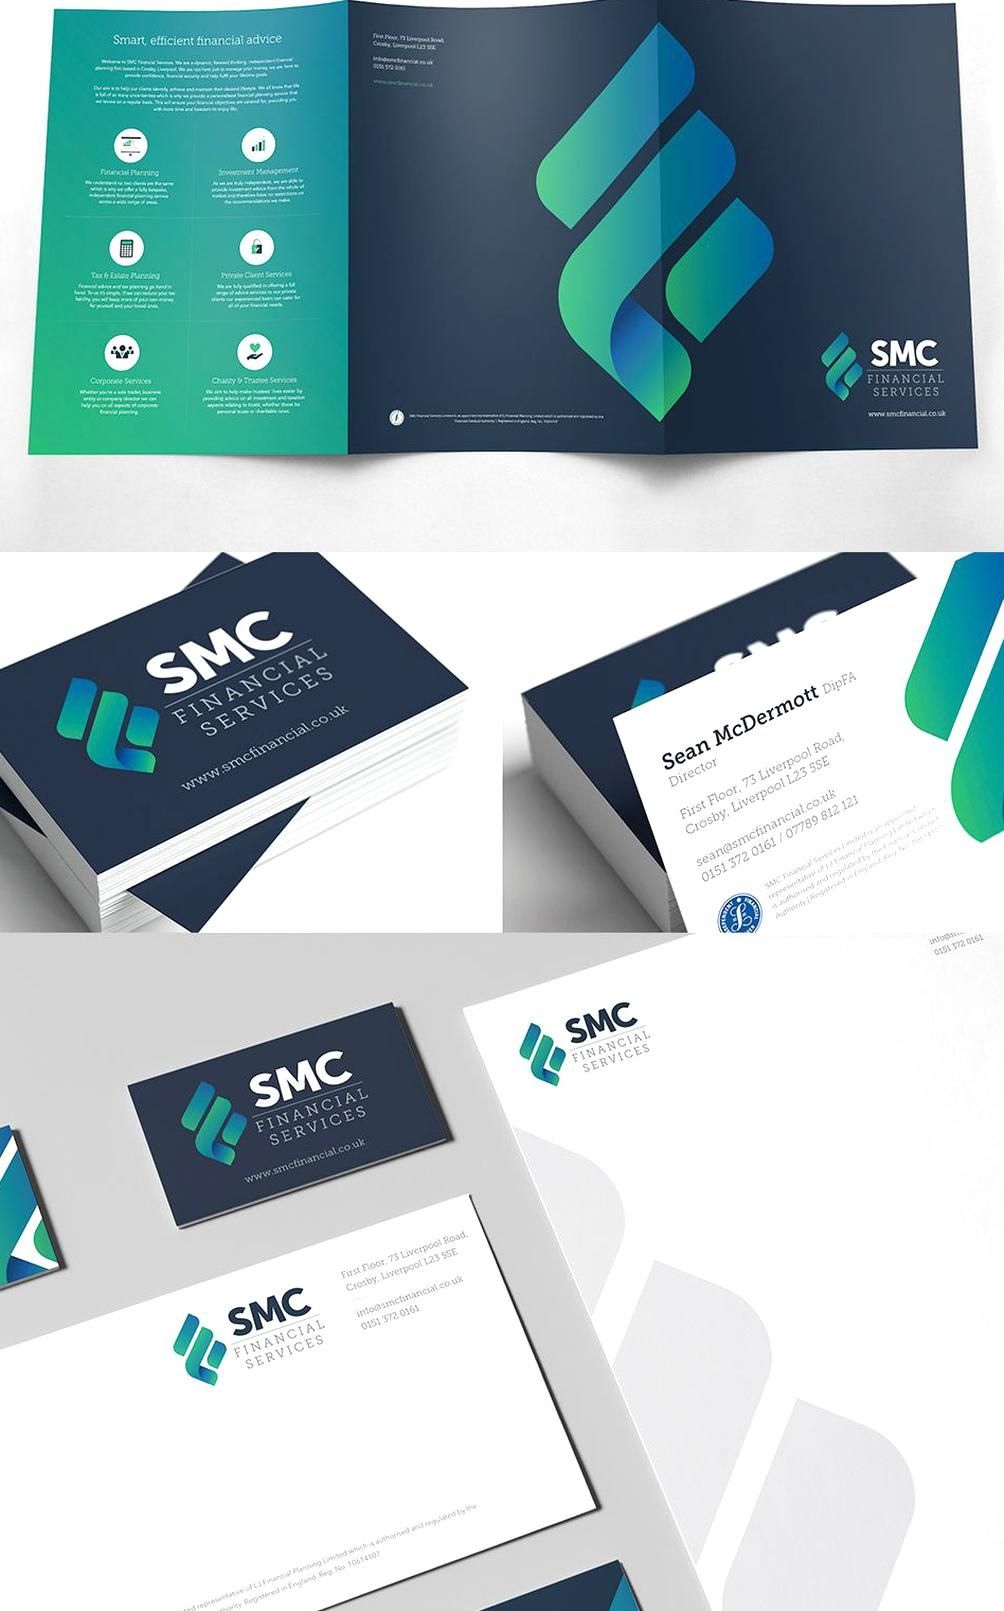 Brochure Business Card And Business Stationary Design For Smc Financial Services Branding Business Stationary Corporate Design Corporate Identity Inspiration